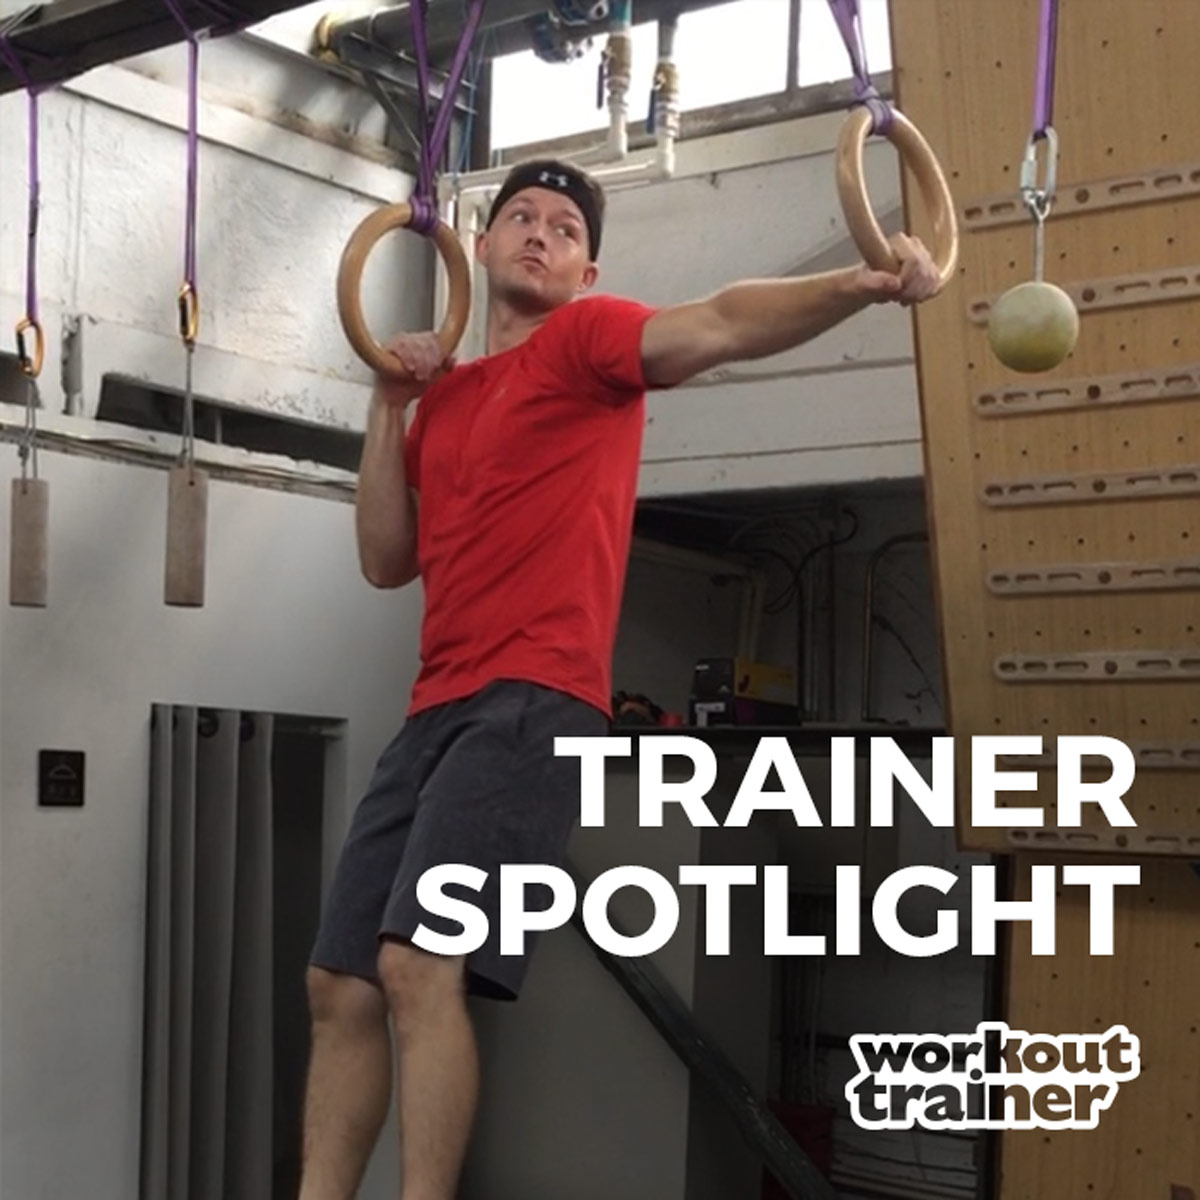 Trainer John Alsobrooks training with suspension rings at the gym